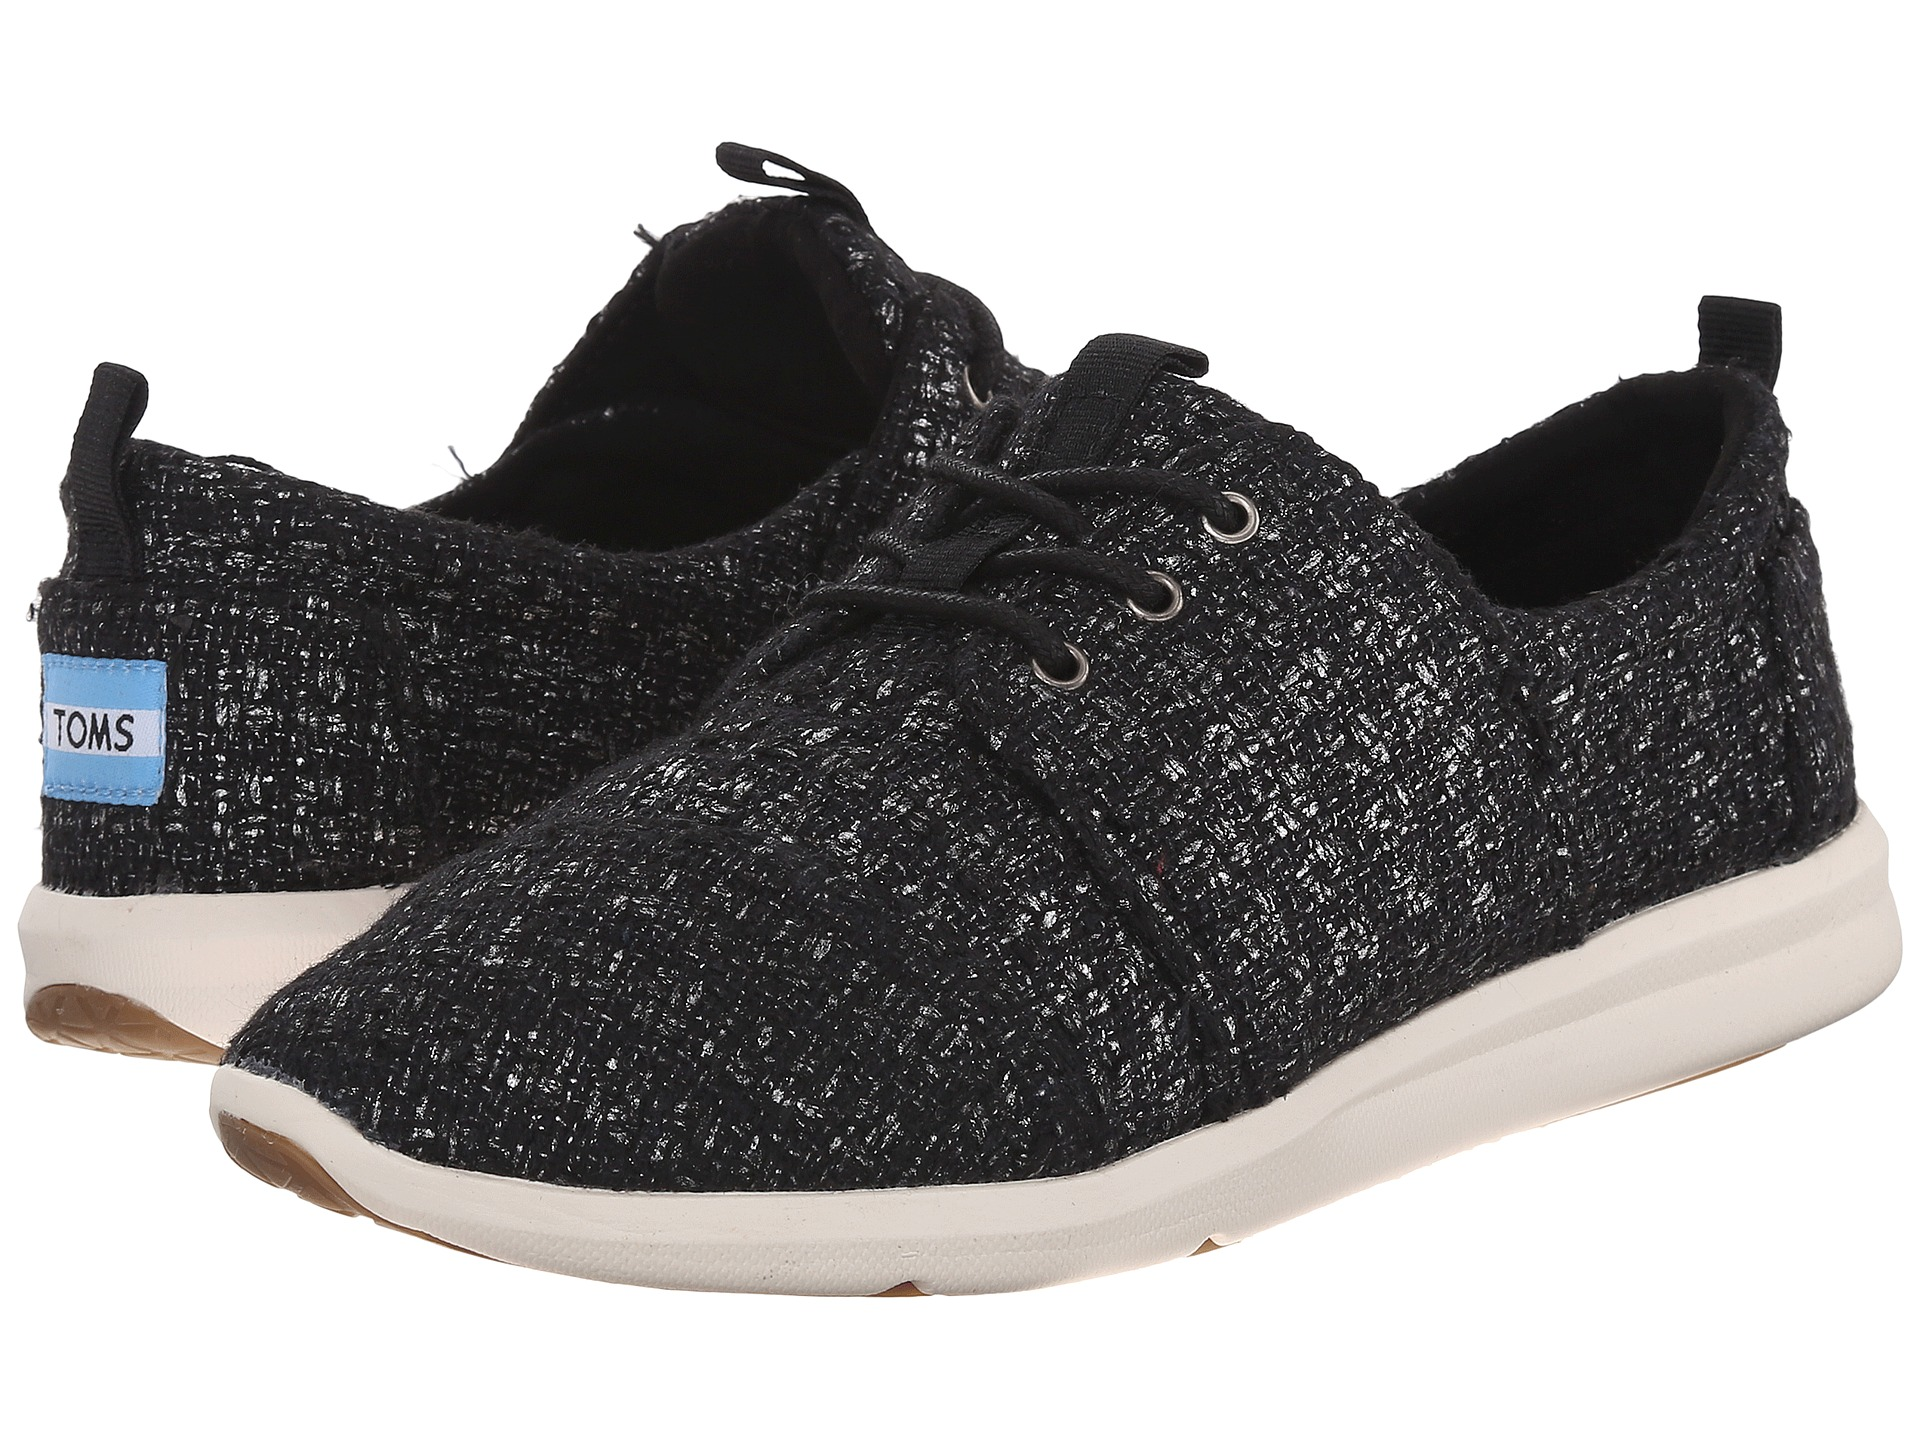 Toms Tennis Shoes Tribal